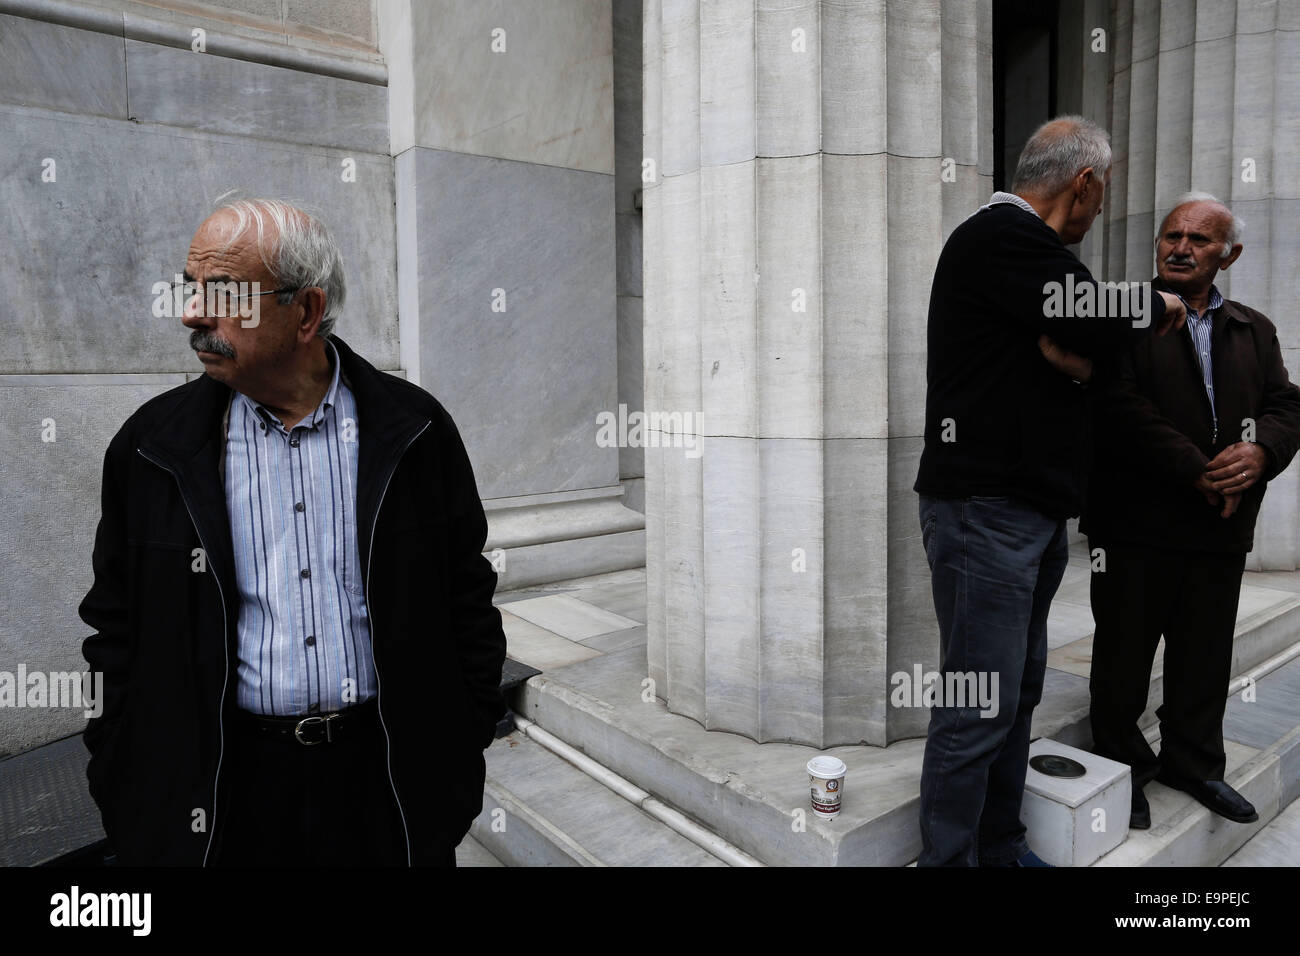 Thessaloniki, Greece. 31st Oct, 2014. Bondholders protest outside the Bank of Greece. On the occasion of World Savings - Stock Image